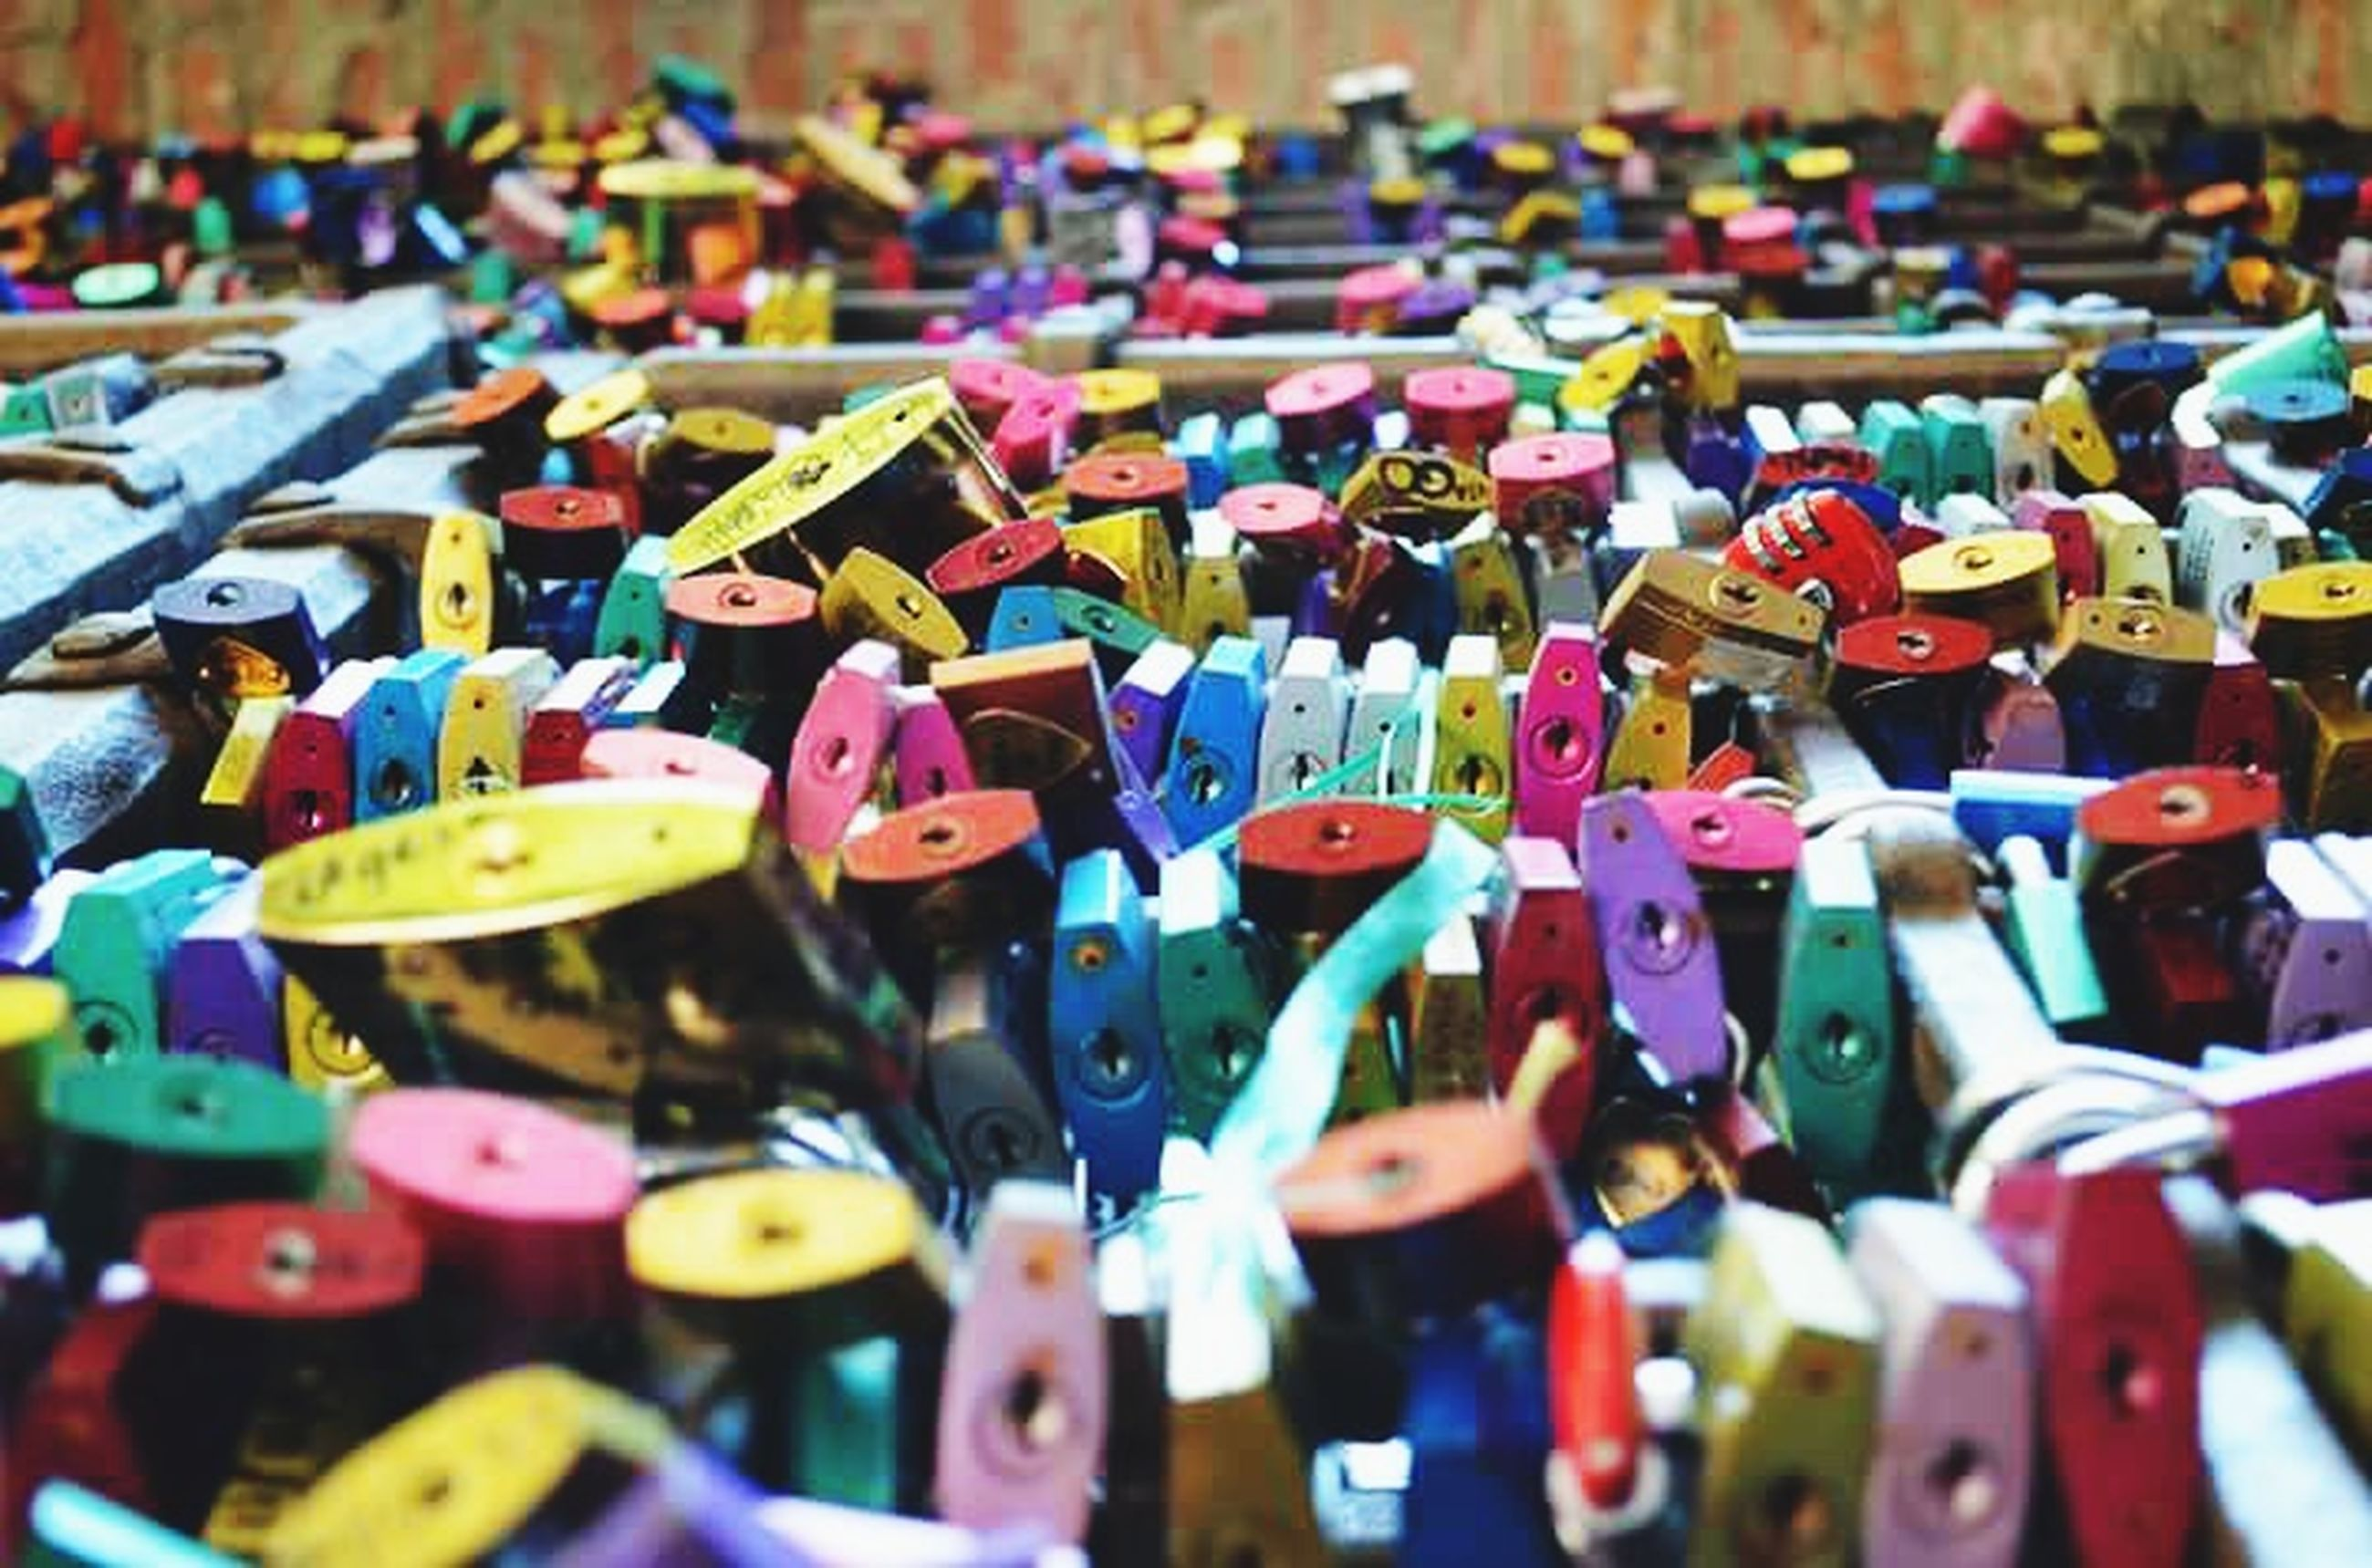 large group of objects, abundance, multi colored, selective focus, variation, in a row, focus on foreground, close-up, padlock, choice, full frame, order, colorful, repetition, backgrounds, metal, arrangement, day, lock, high angle view